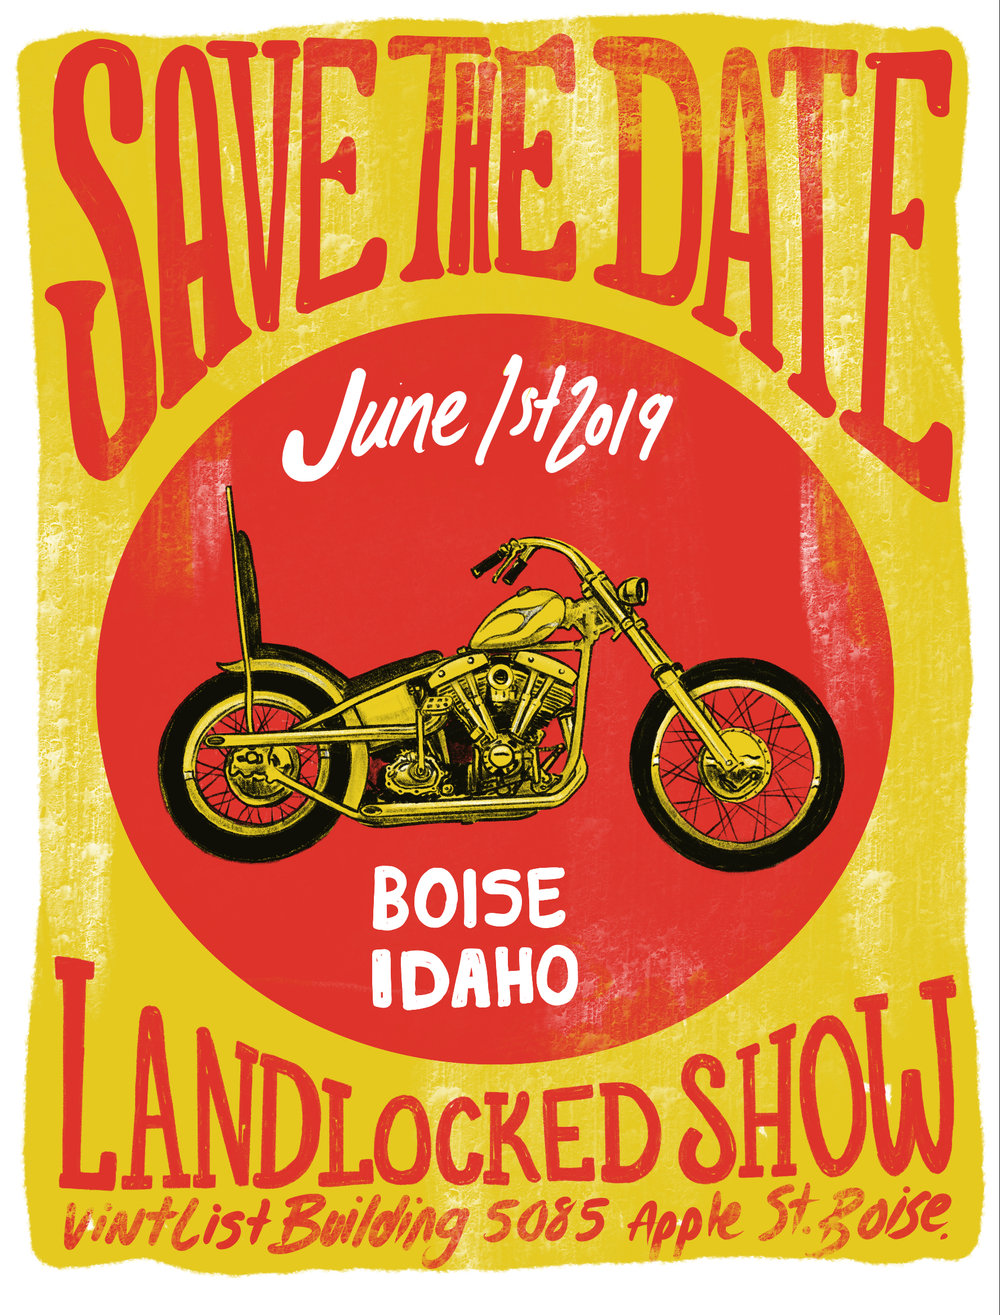 Landlocked Save the Date 2019.jpeg